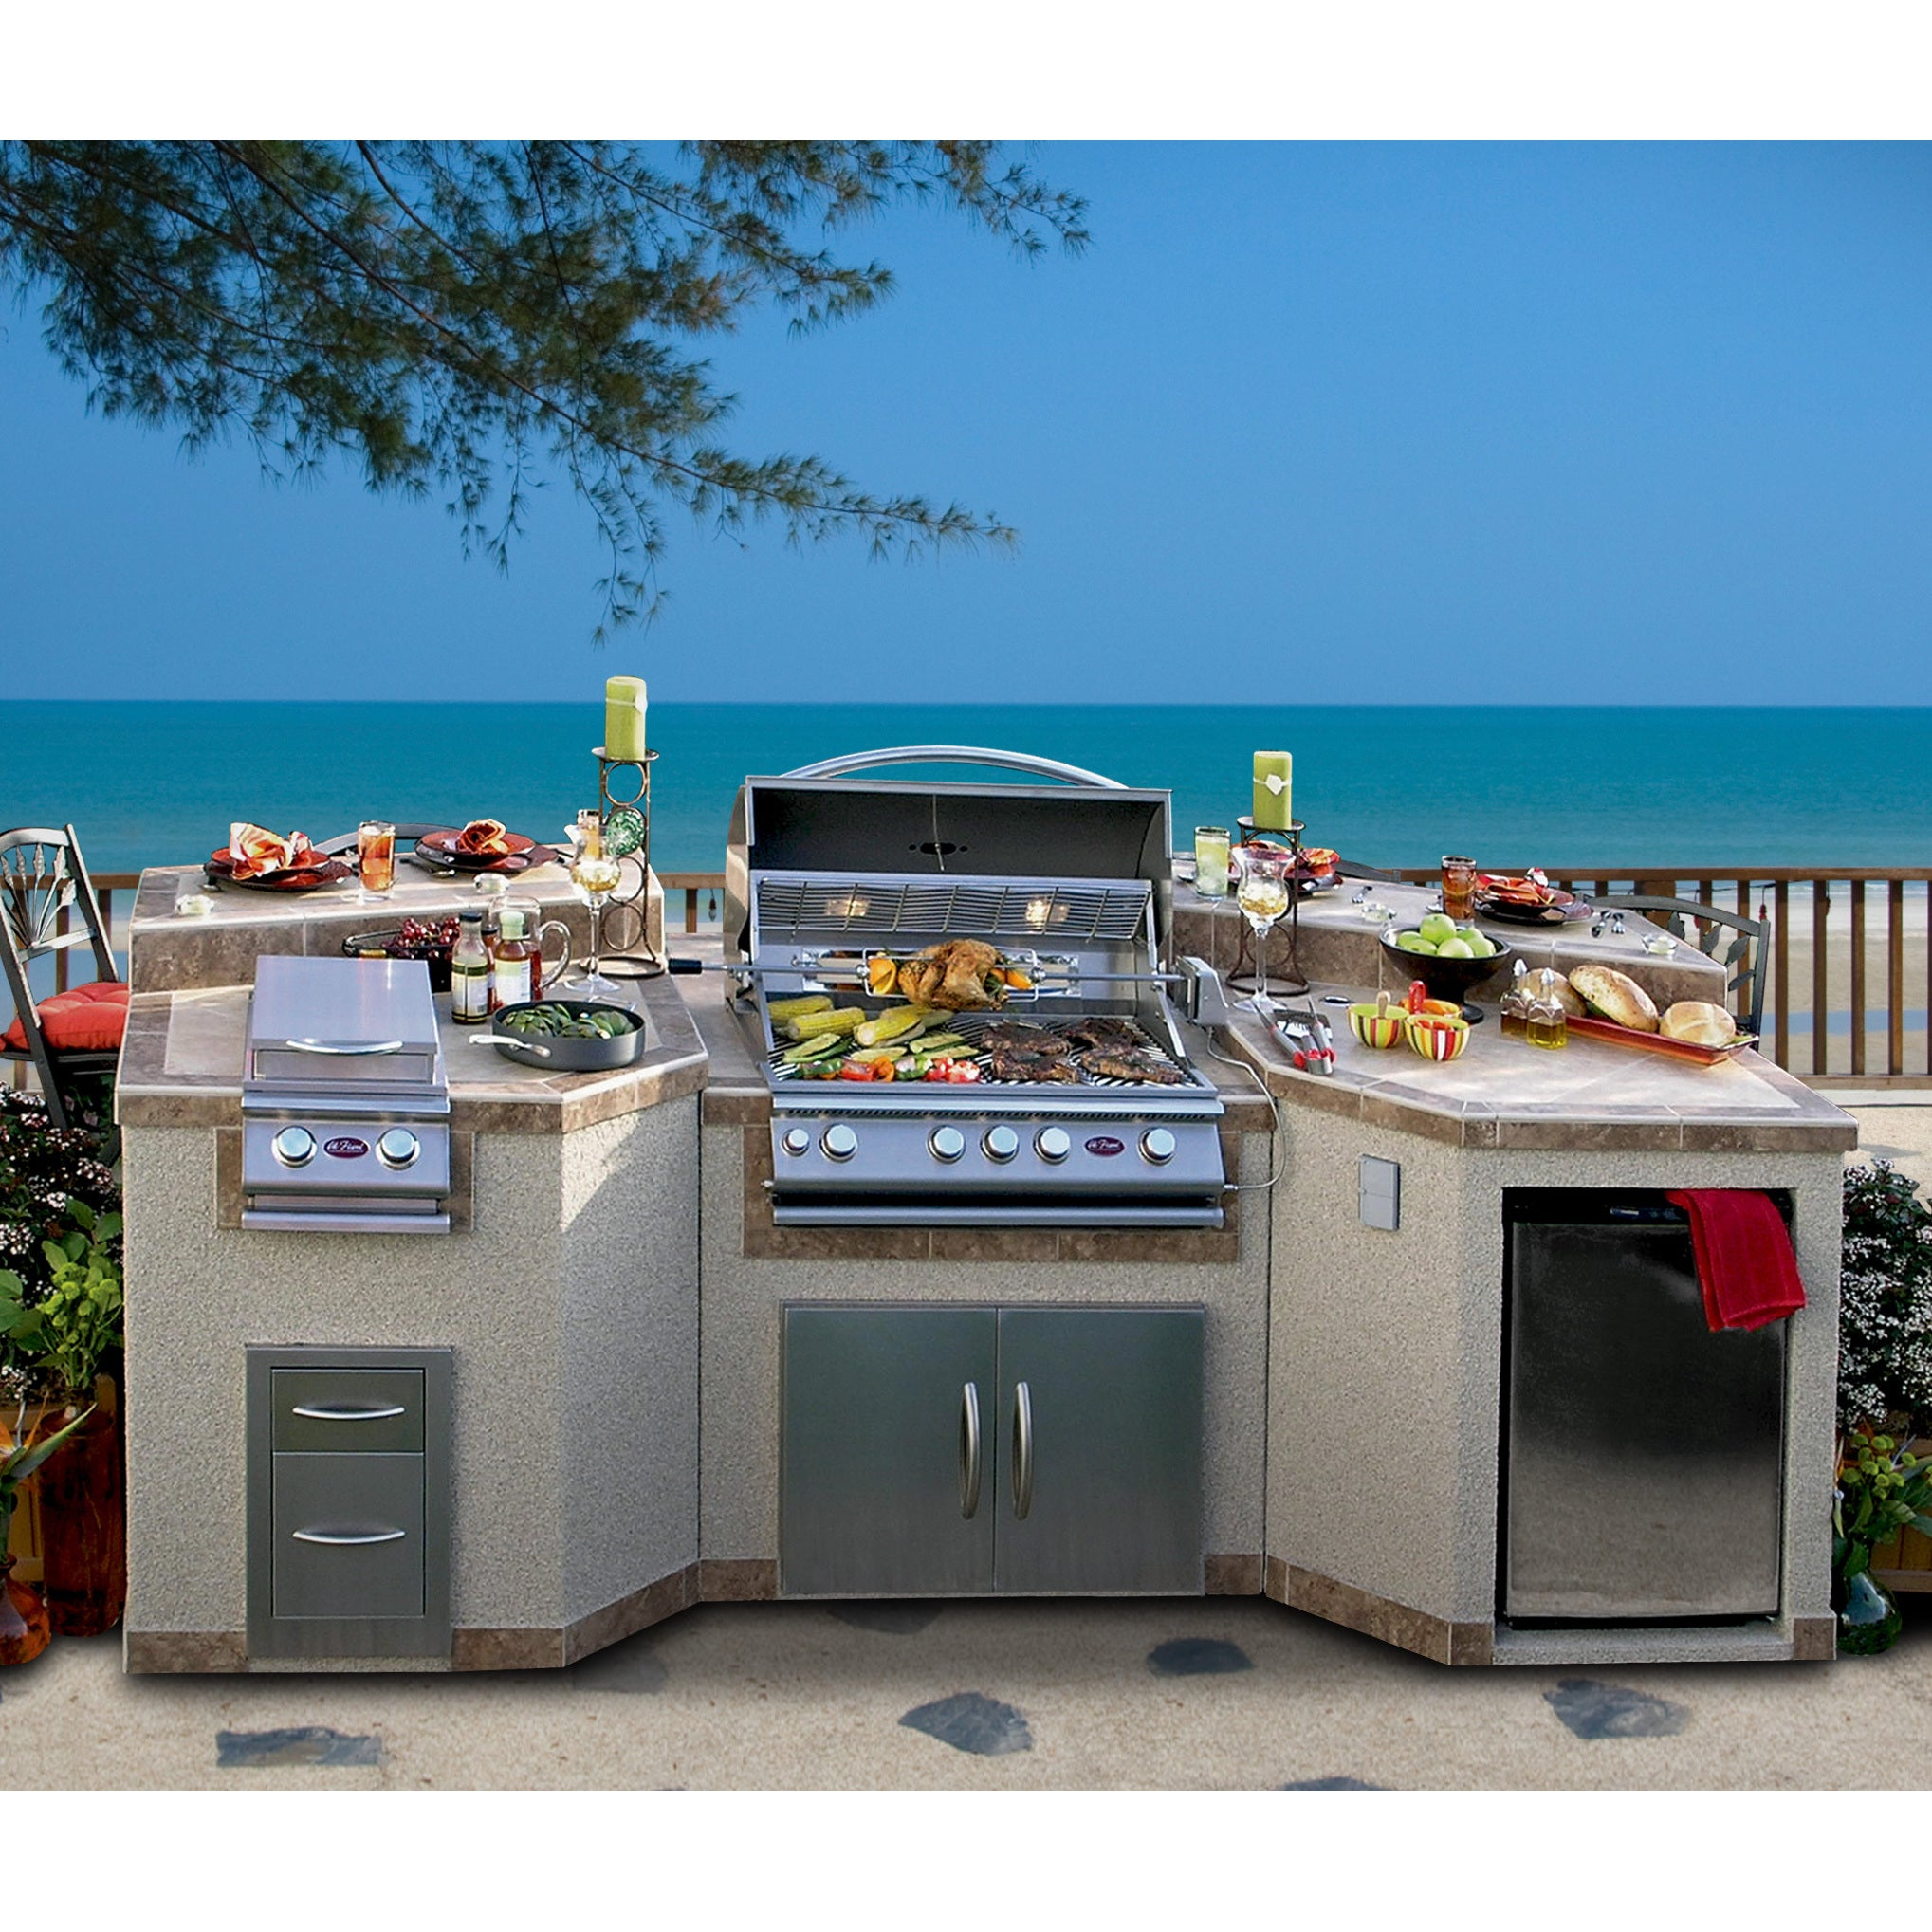 Buy Stainless Steel Gas Grills Online at Overstock.com | Our Best ...